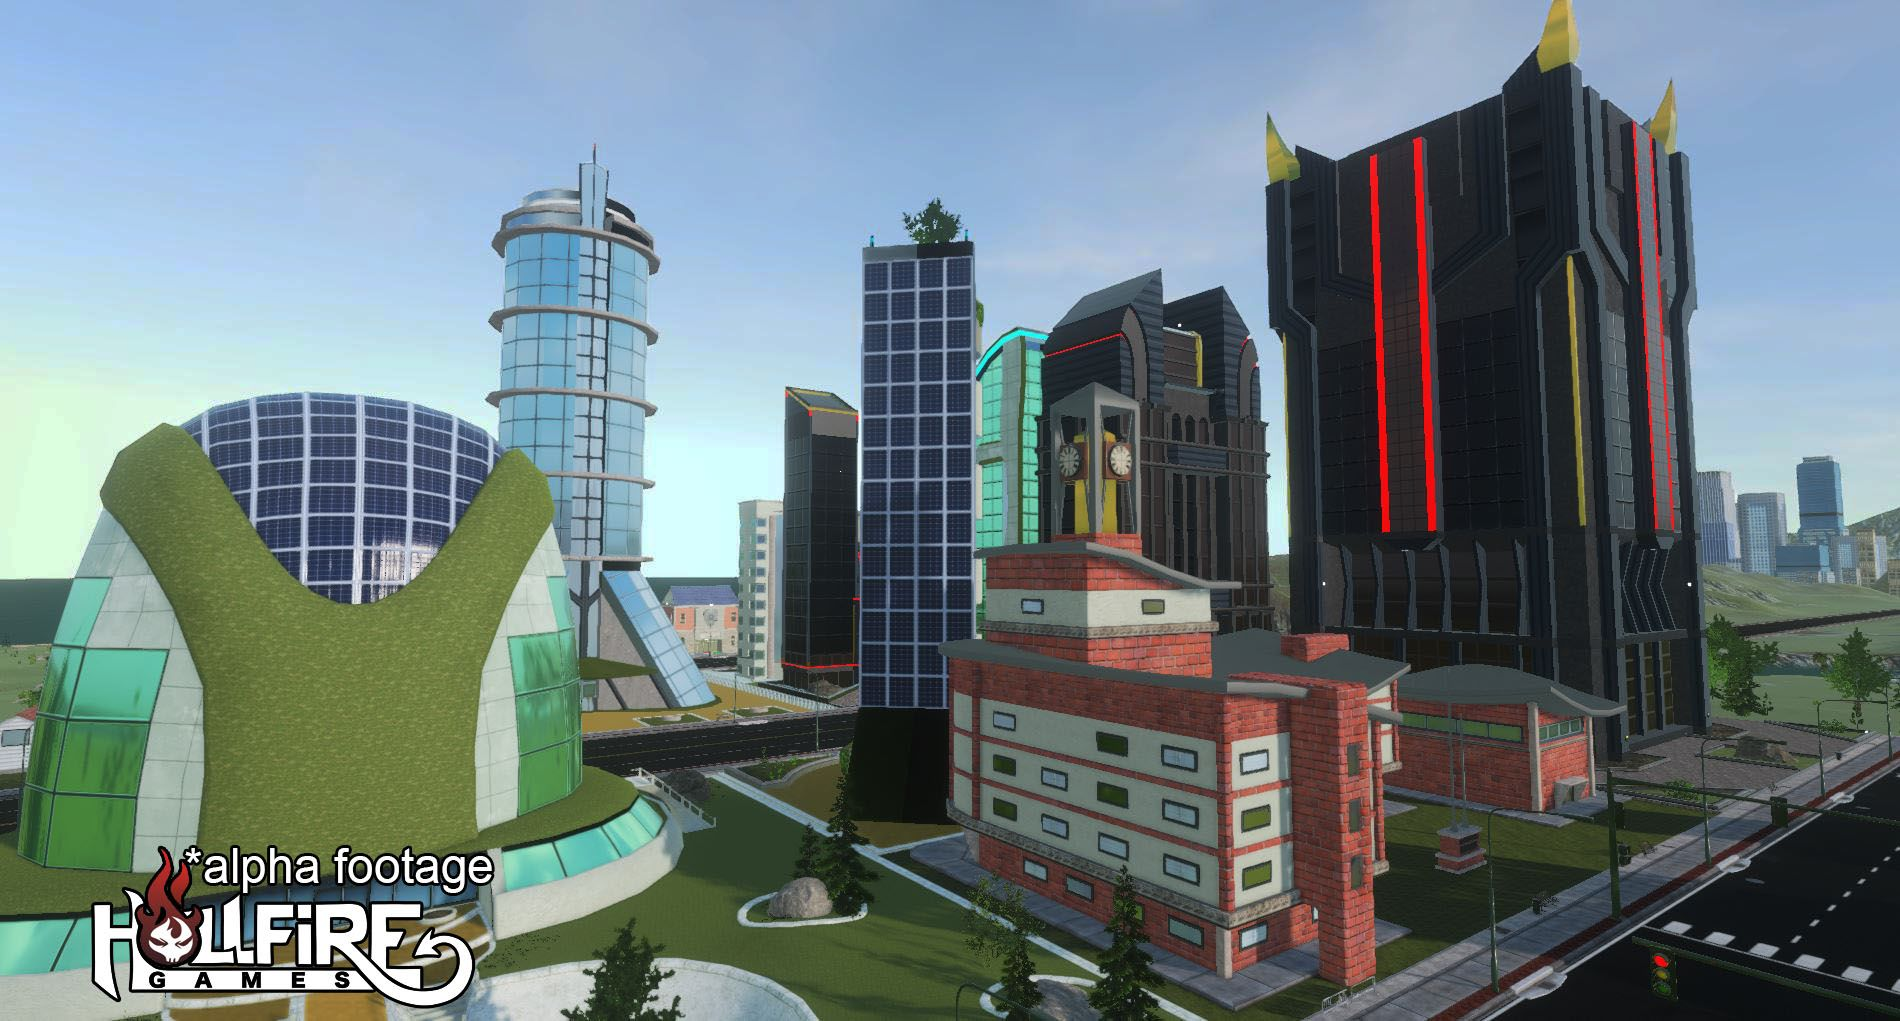 Upgrades Take You From Town to Metropolis, C.Birch, Aug 10, 2015, 6:28 PM, YourPSHome.net, jpg, Newsletter-Skyline.jpg